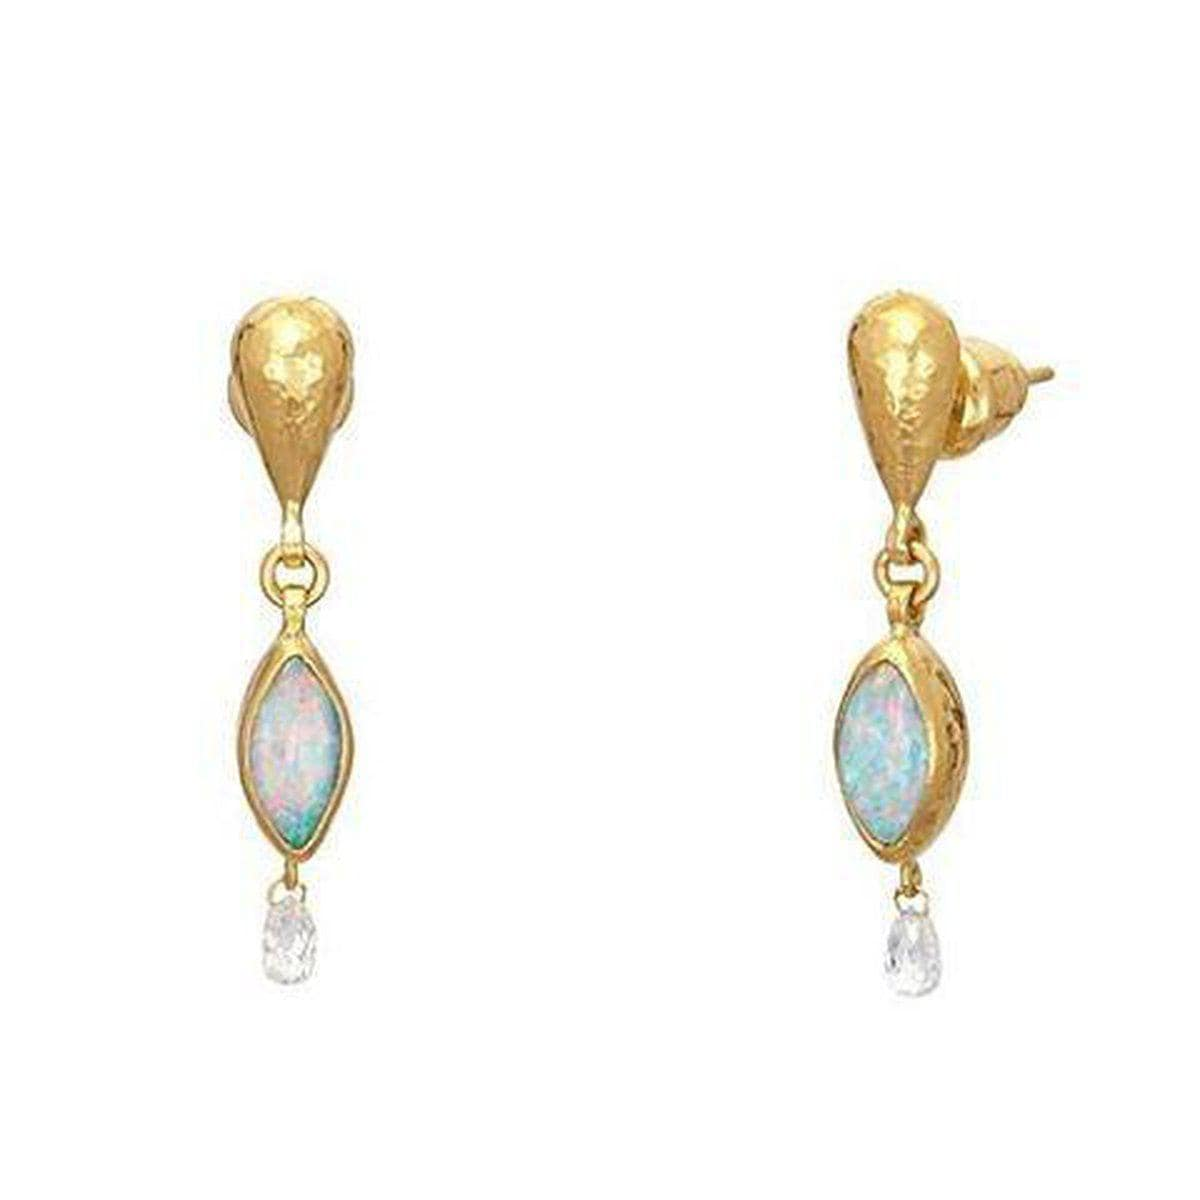 Amulet Hue 24K Gold Diamond Opal Earrings - E-U24628-OP-GURHAN-Renee Taylor Gallery